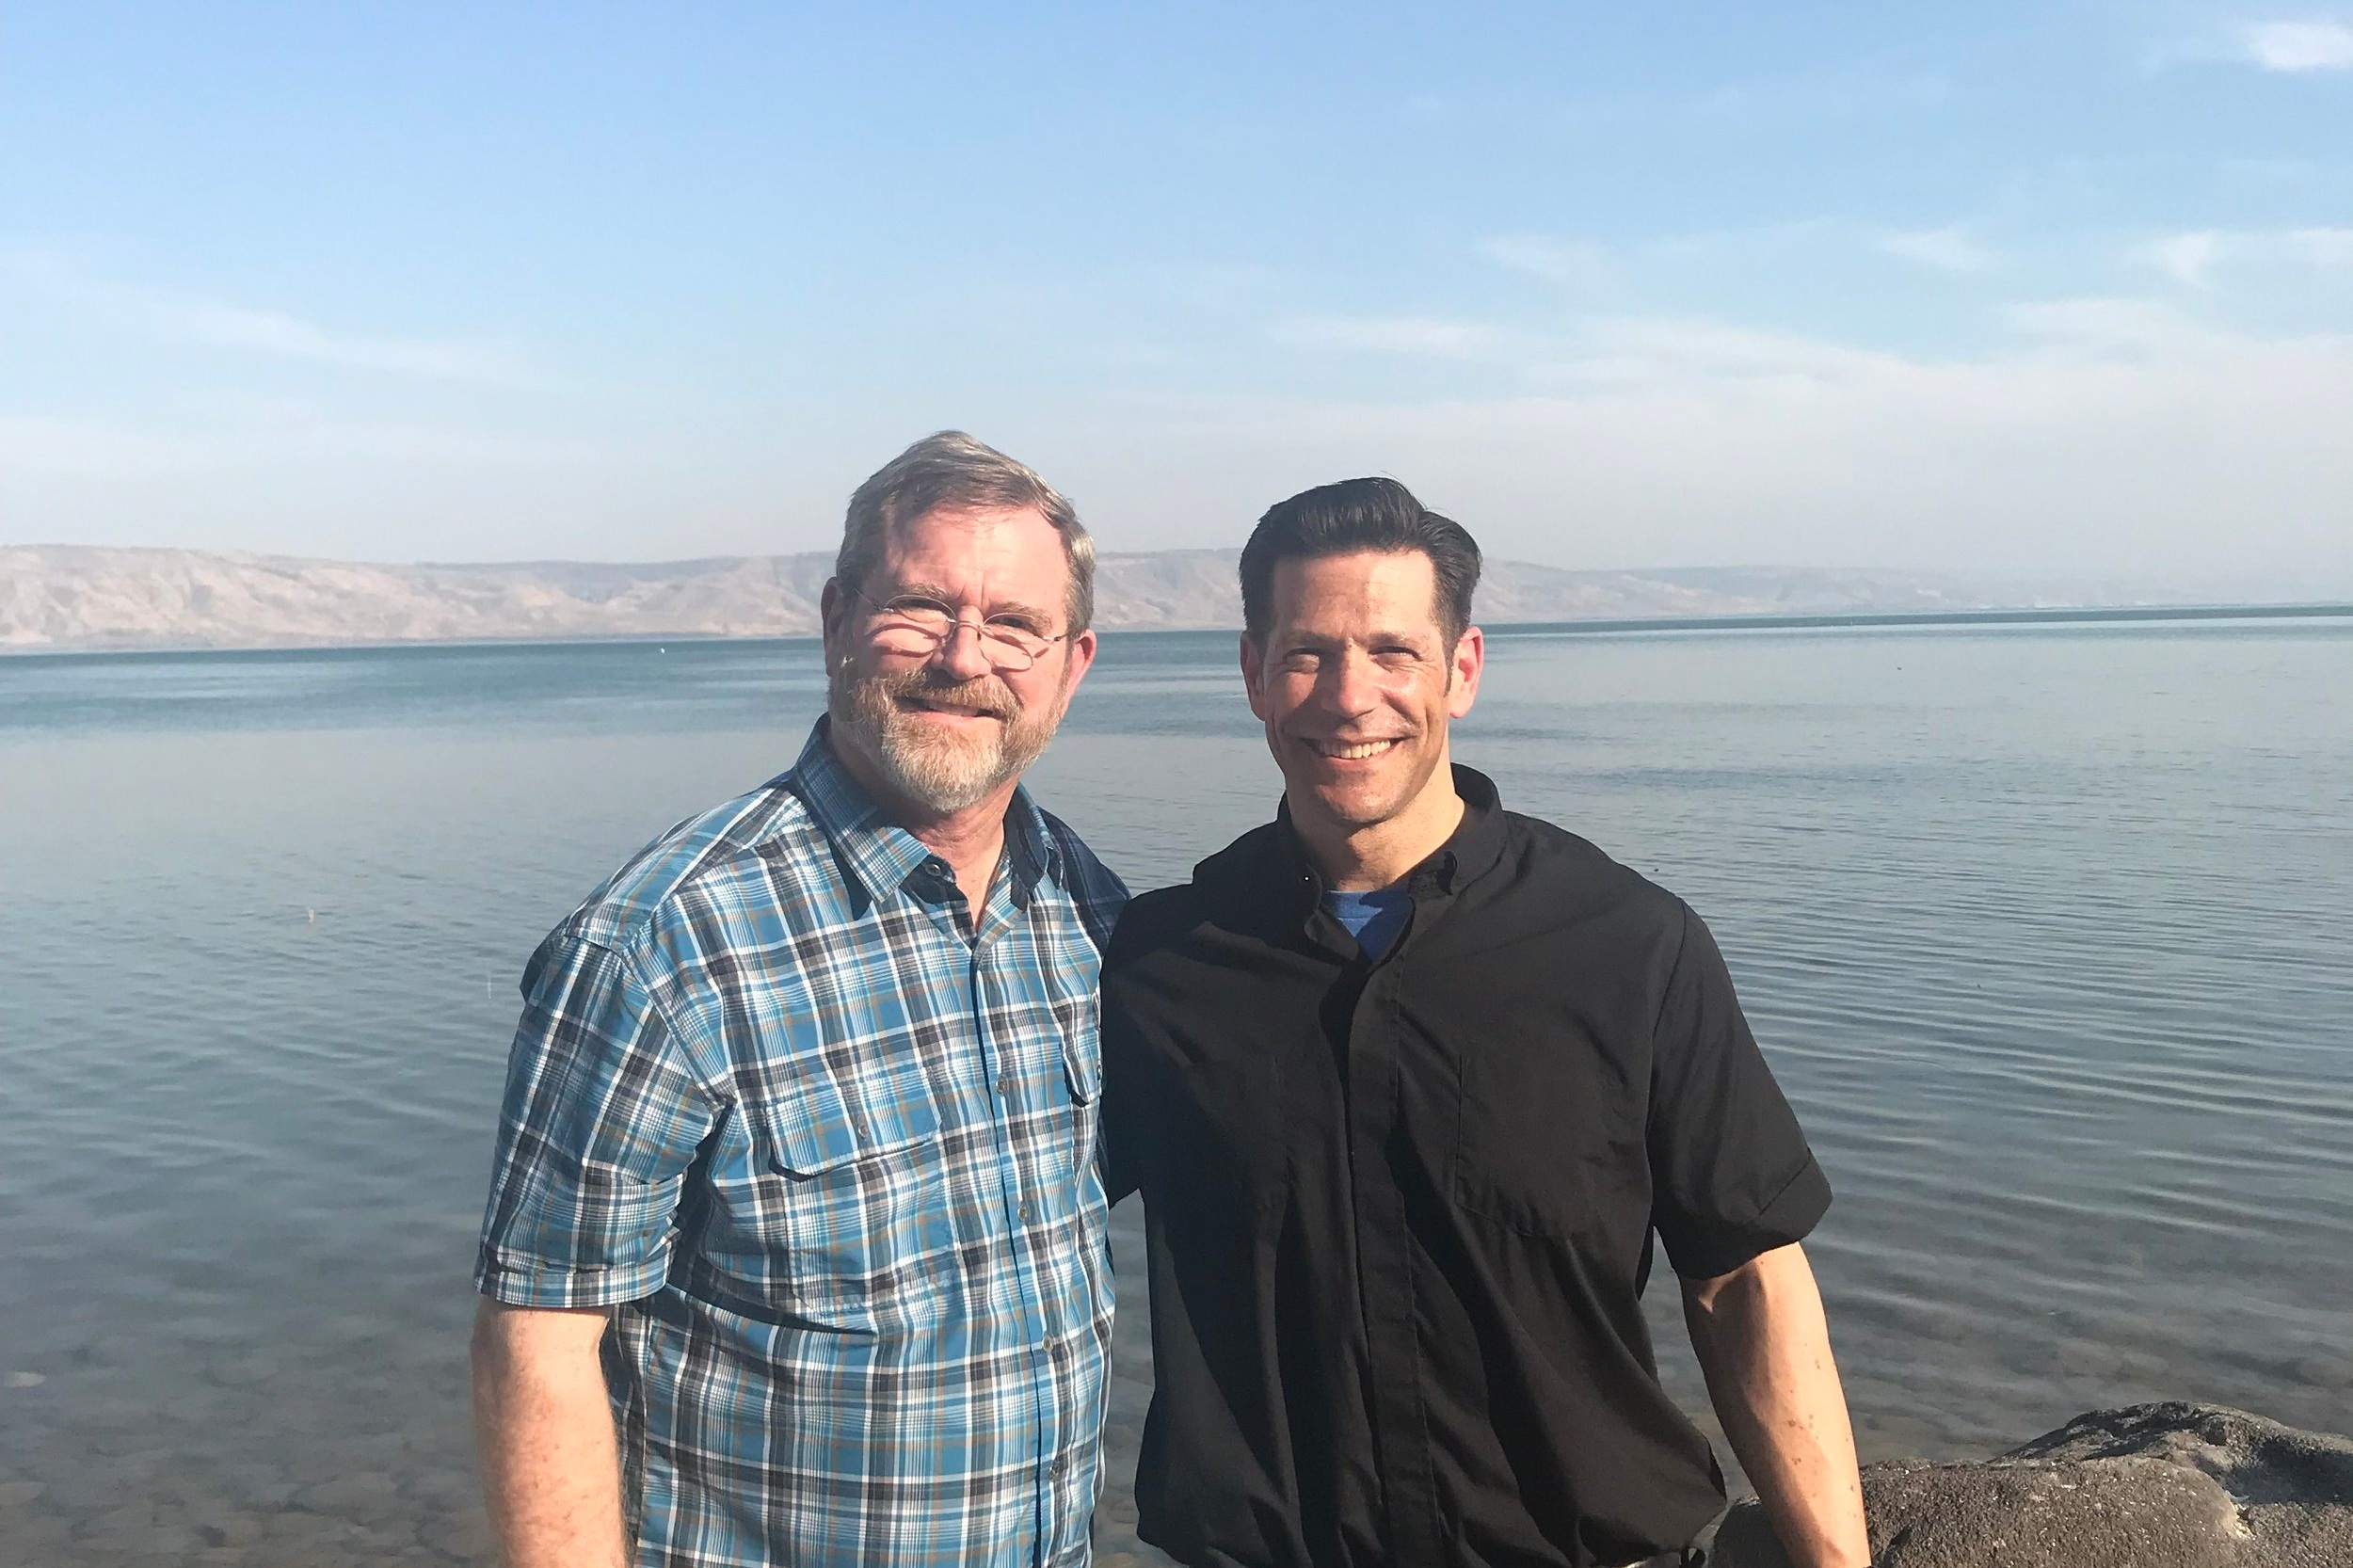 Jeff Cavins & Fr. Mike Schmitz invite you to walk with them on the shore of the Sea of Galilee!